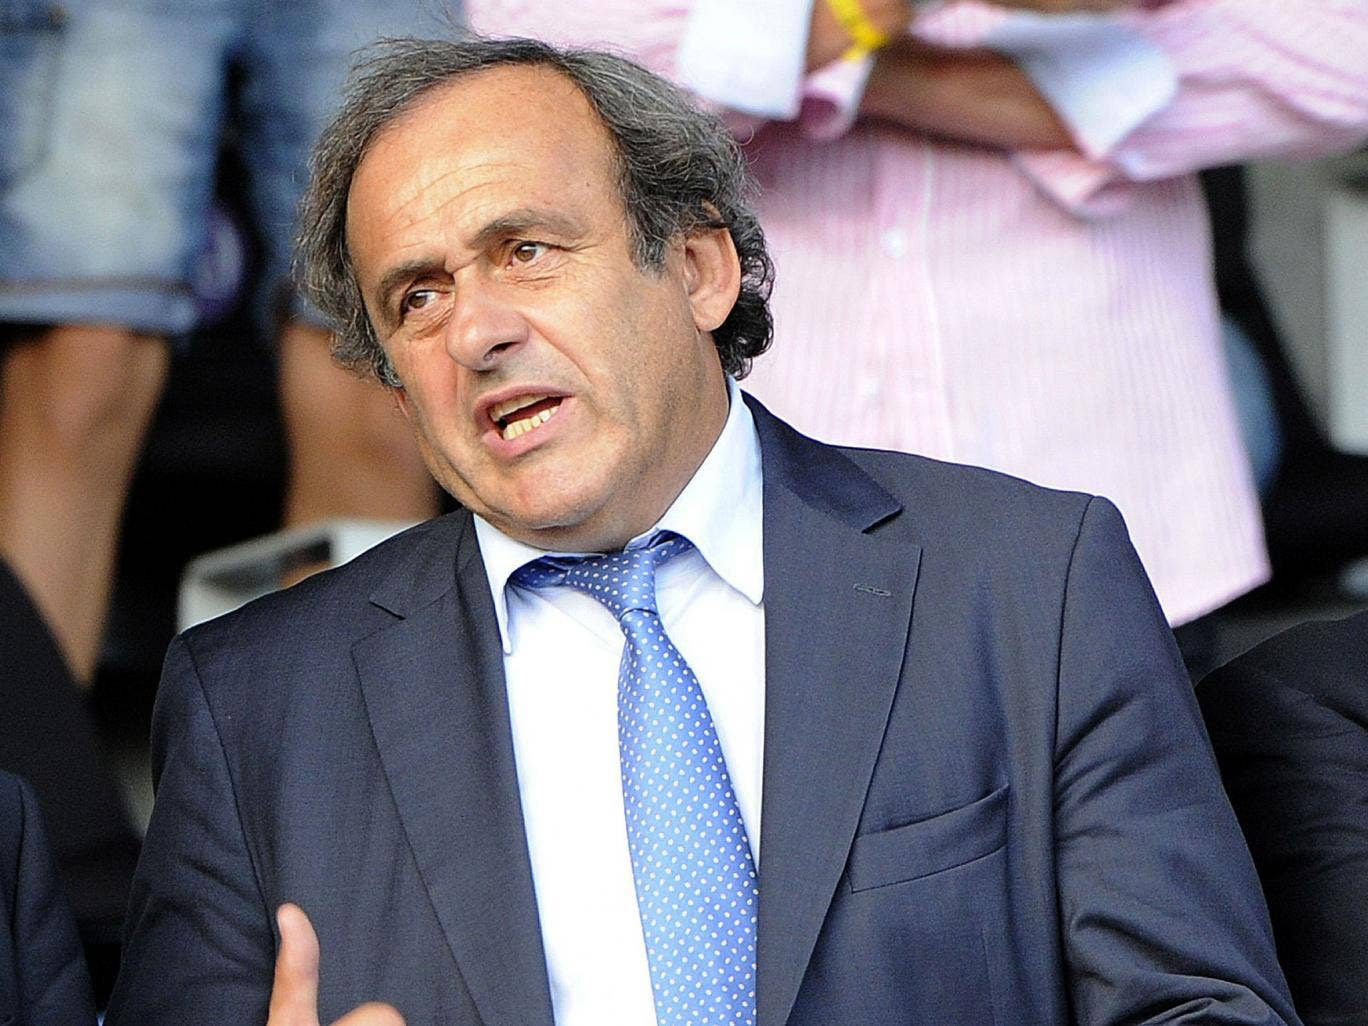 Michel Platini has long been a supporter of a Qatar World Cup